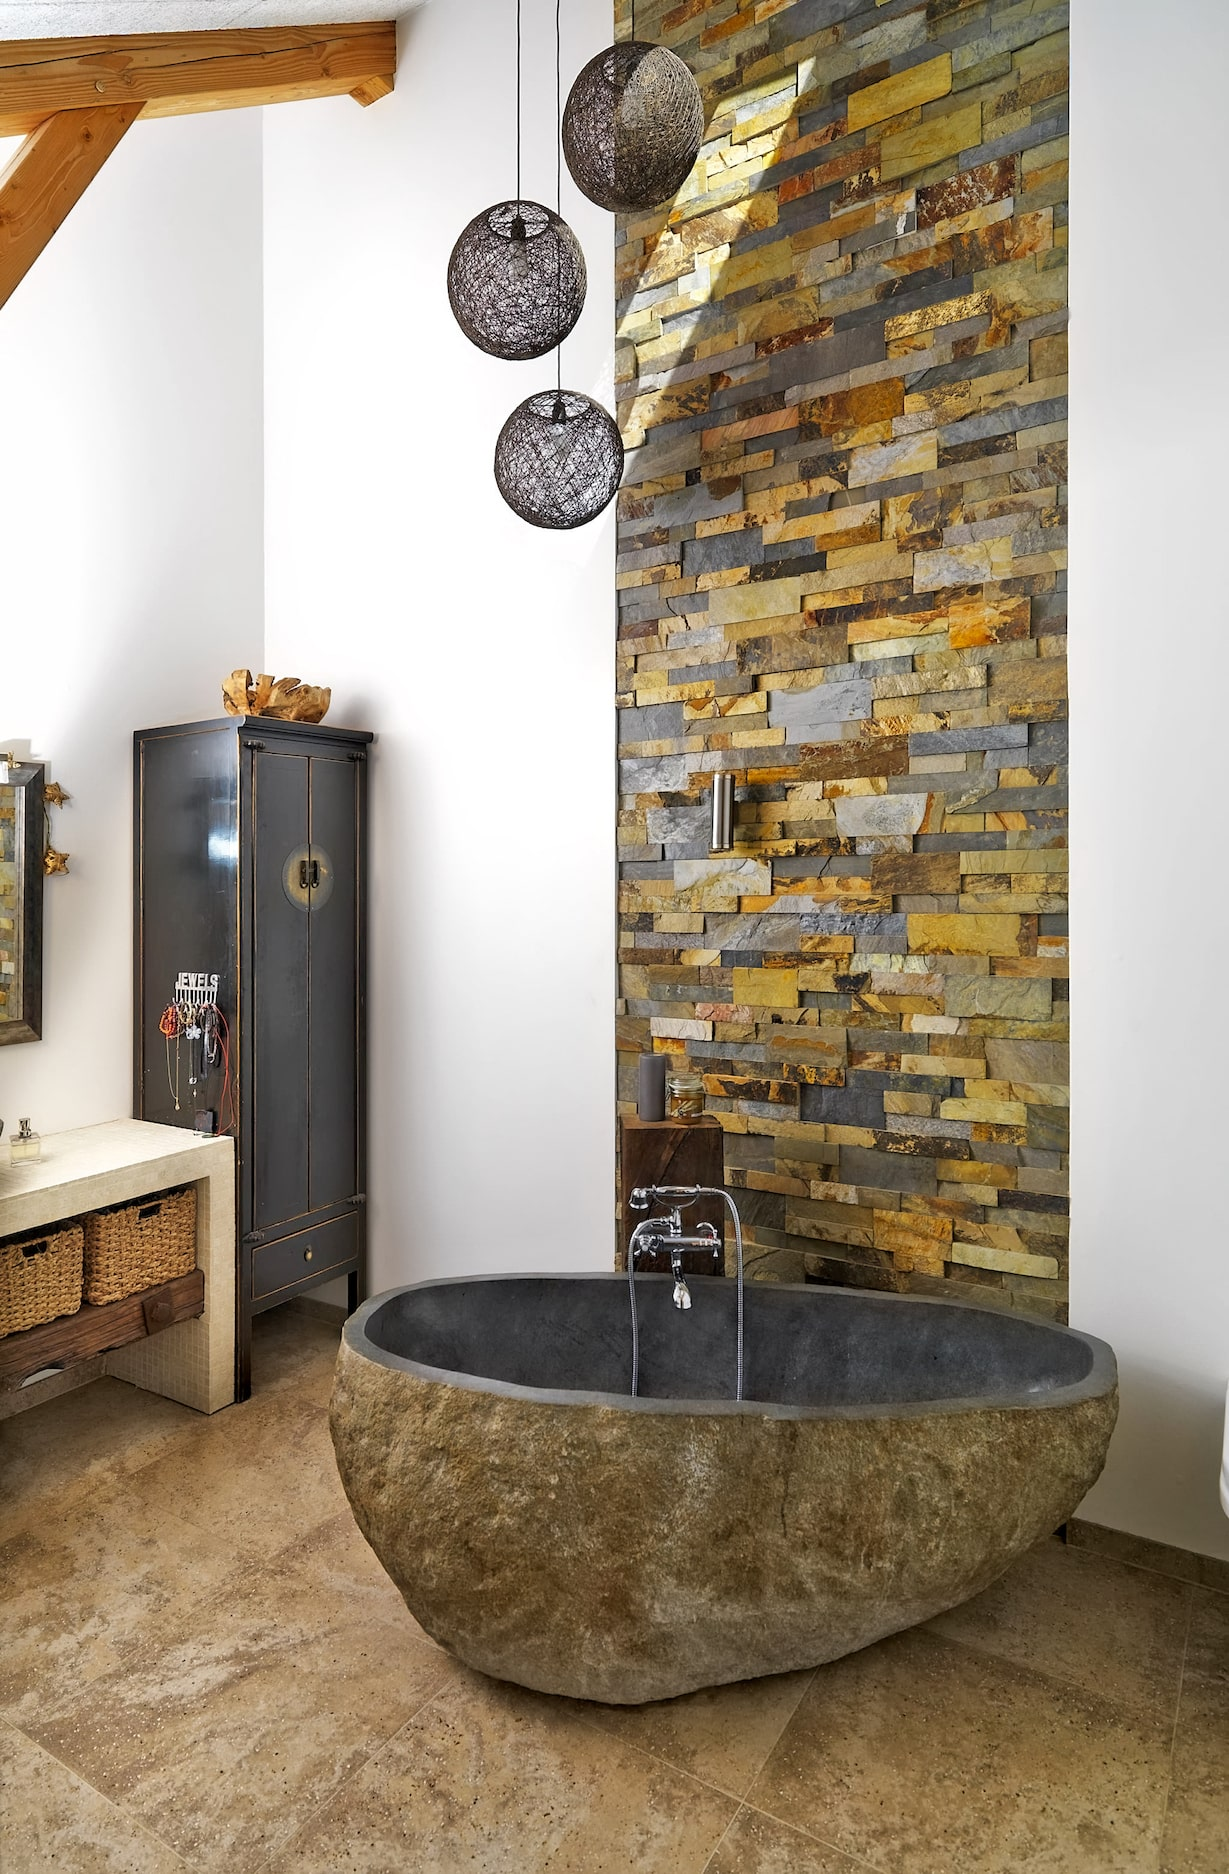 A super unique stone bathroom featuring a floor to ceiling stacked stone feature wall and a freestanding one piece natural stone tub.